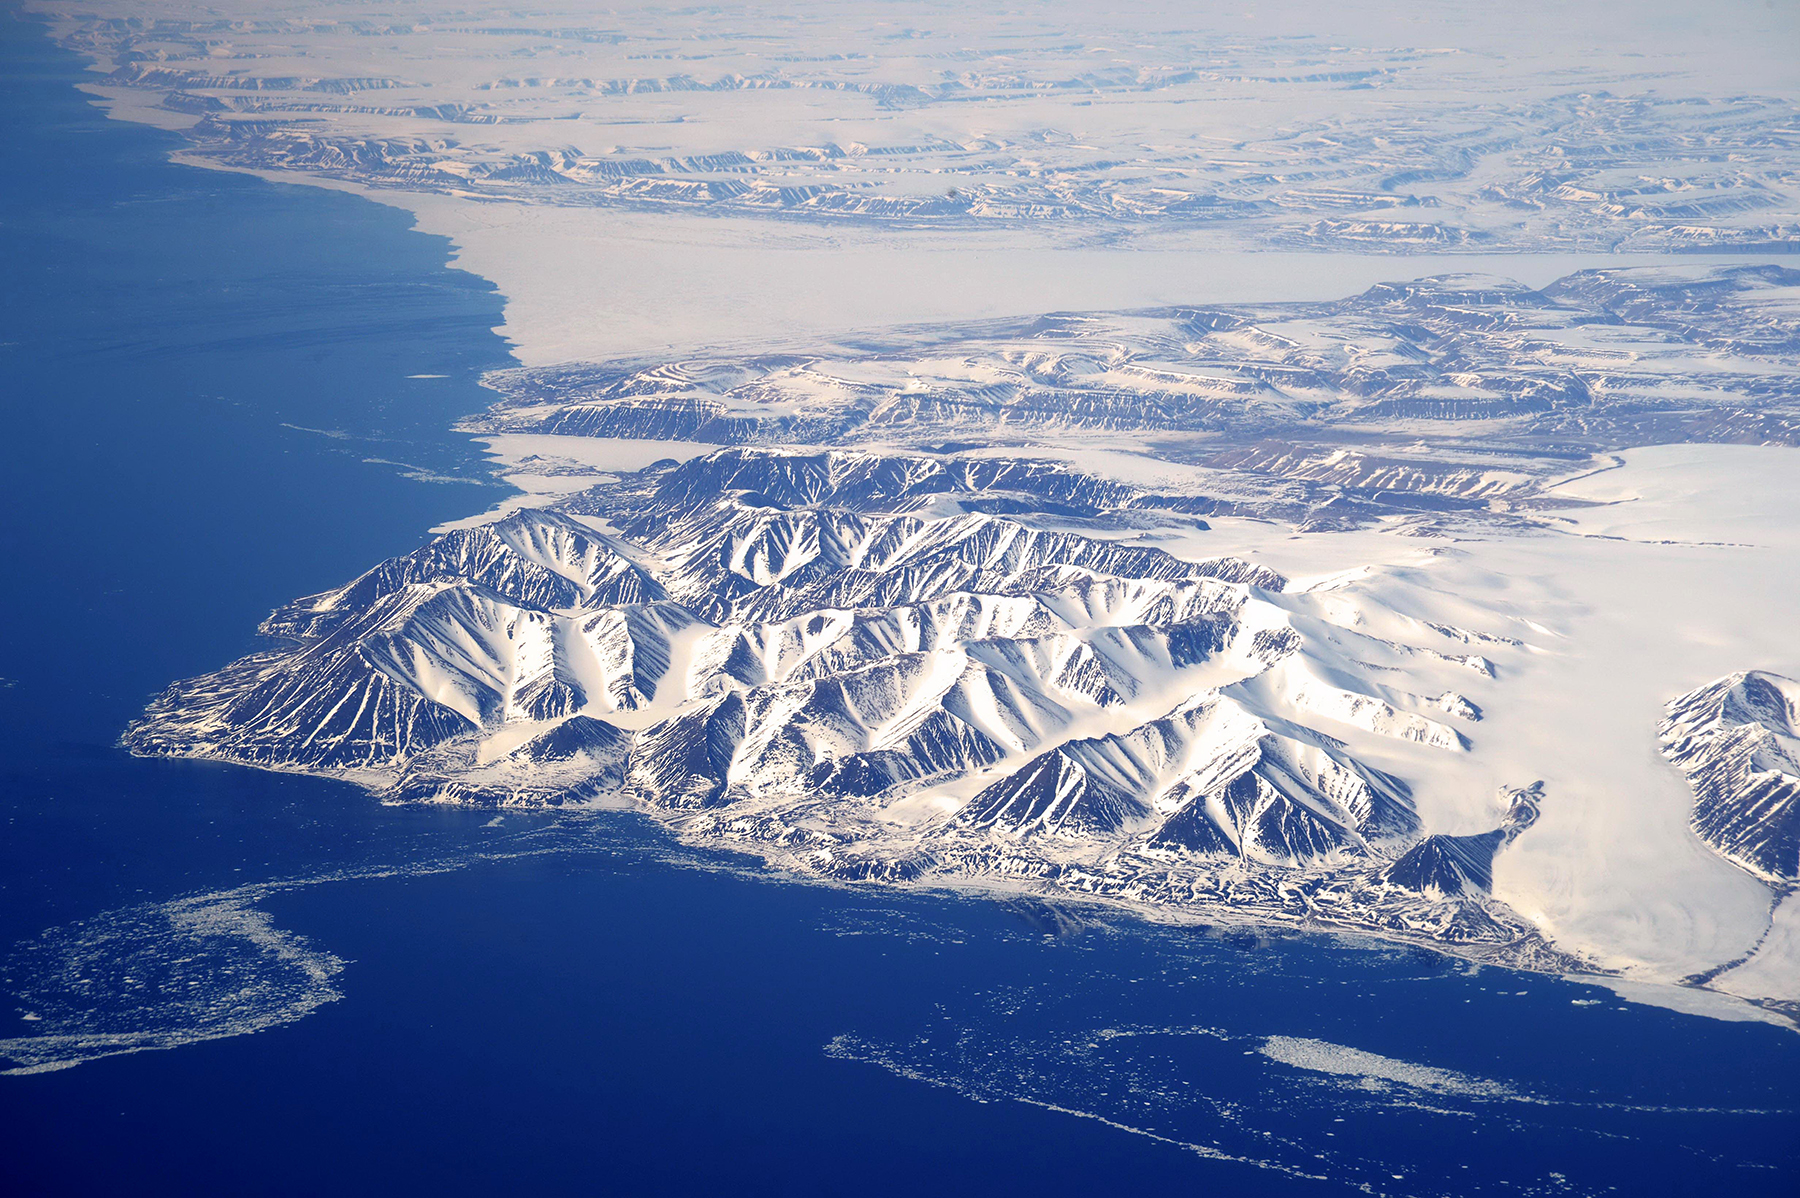 A June 10, 2016 aerial photograph of Nunavut, Canada, taken en route to Canadian Forces Station Alert from a CC-177 Globemaster aircraft during Operation Nevus. PHOTO: Petty Officer 2nd class Belinda Groves